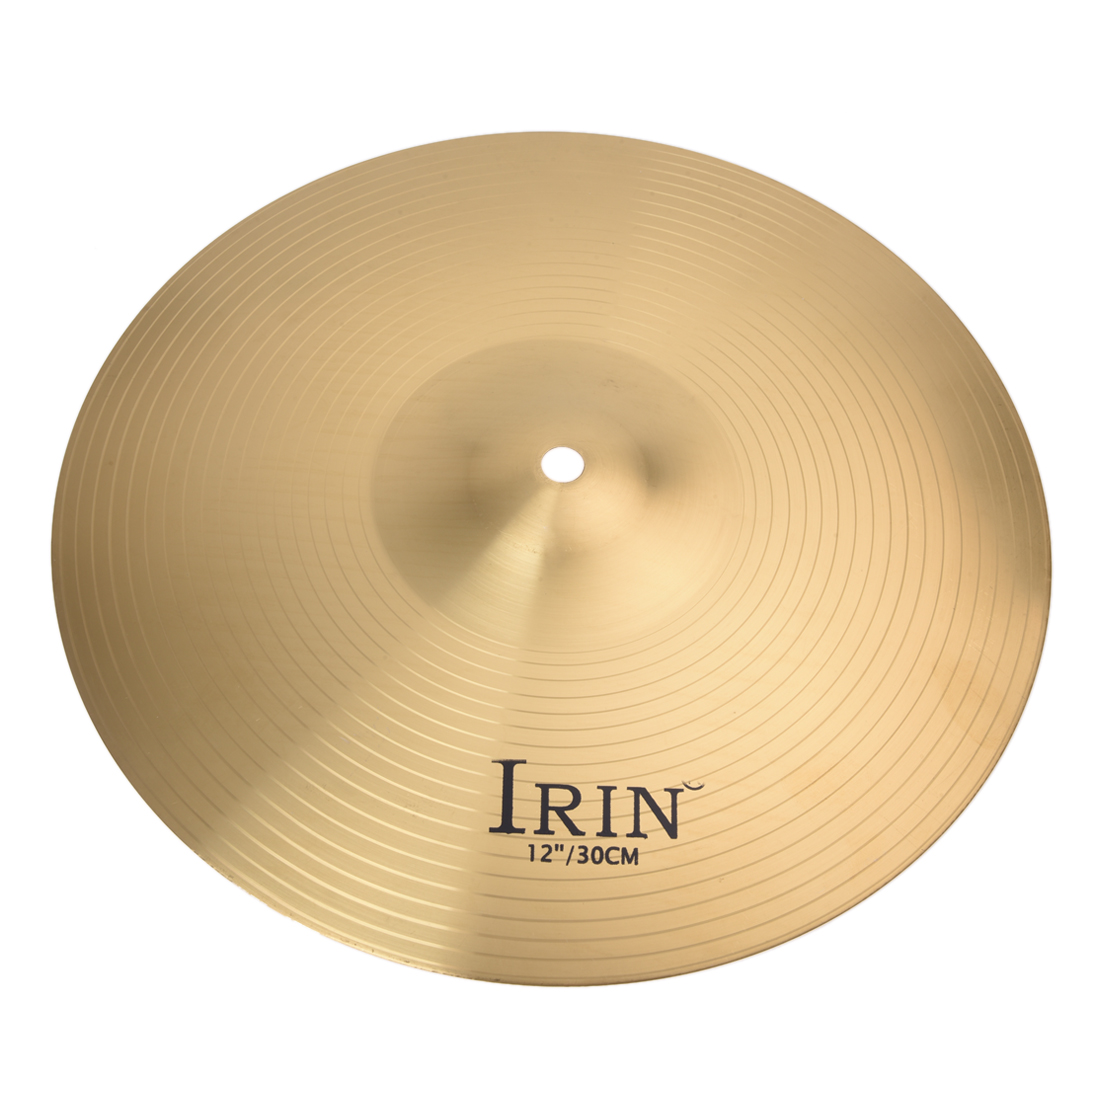 HOT 5X IRIN High Quality 12 Brass Crash Ride Hi-Hat Cymbals Box Drum Set Professional